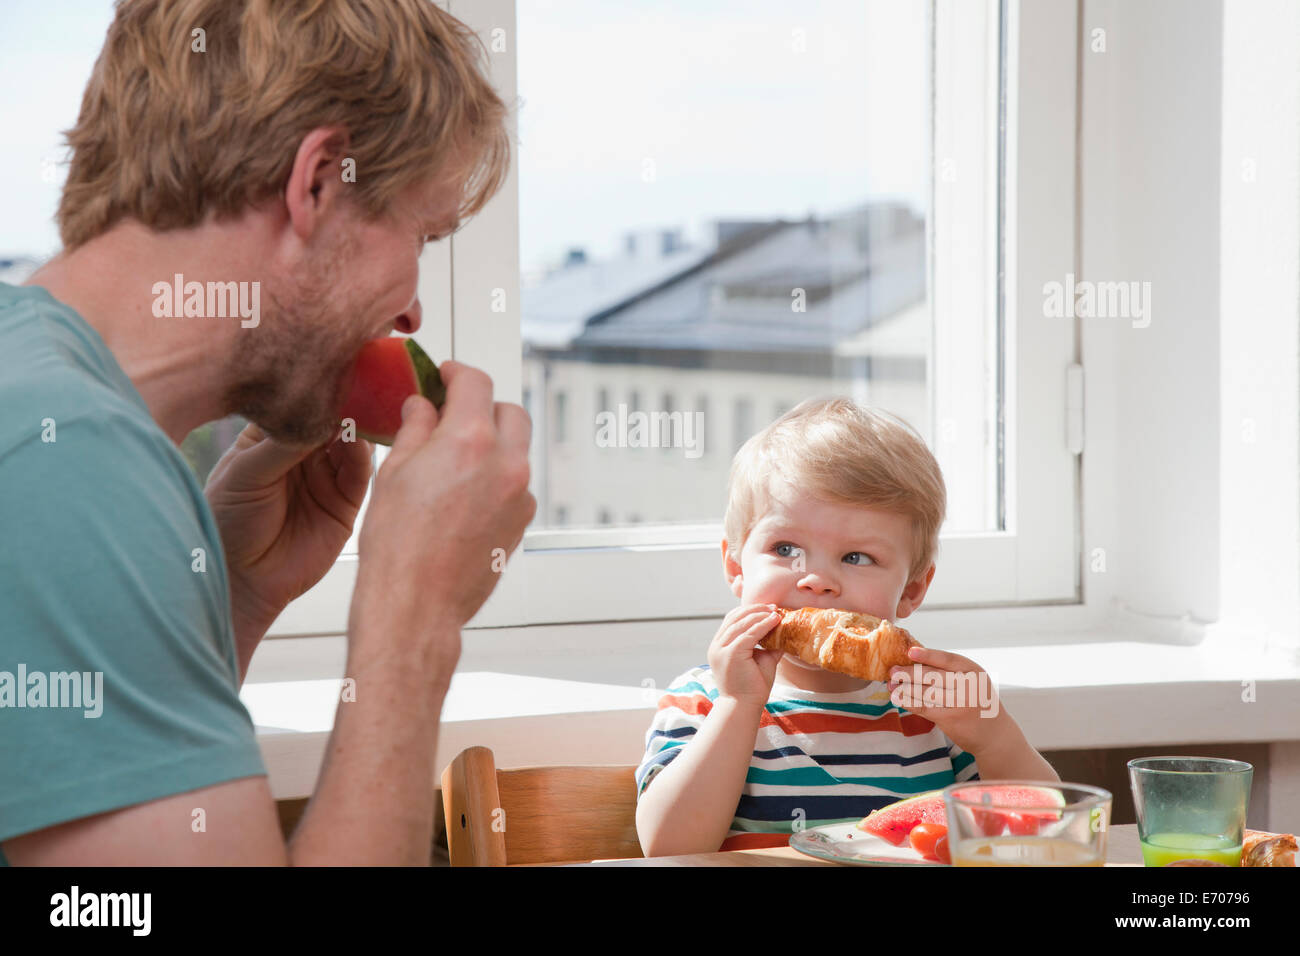 Father and toddler son eating breakfast at kitchen table Stock Photo